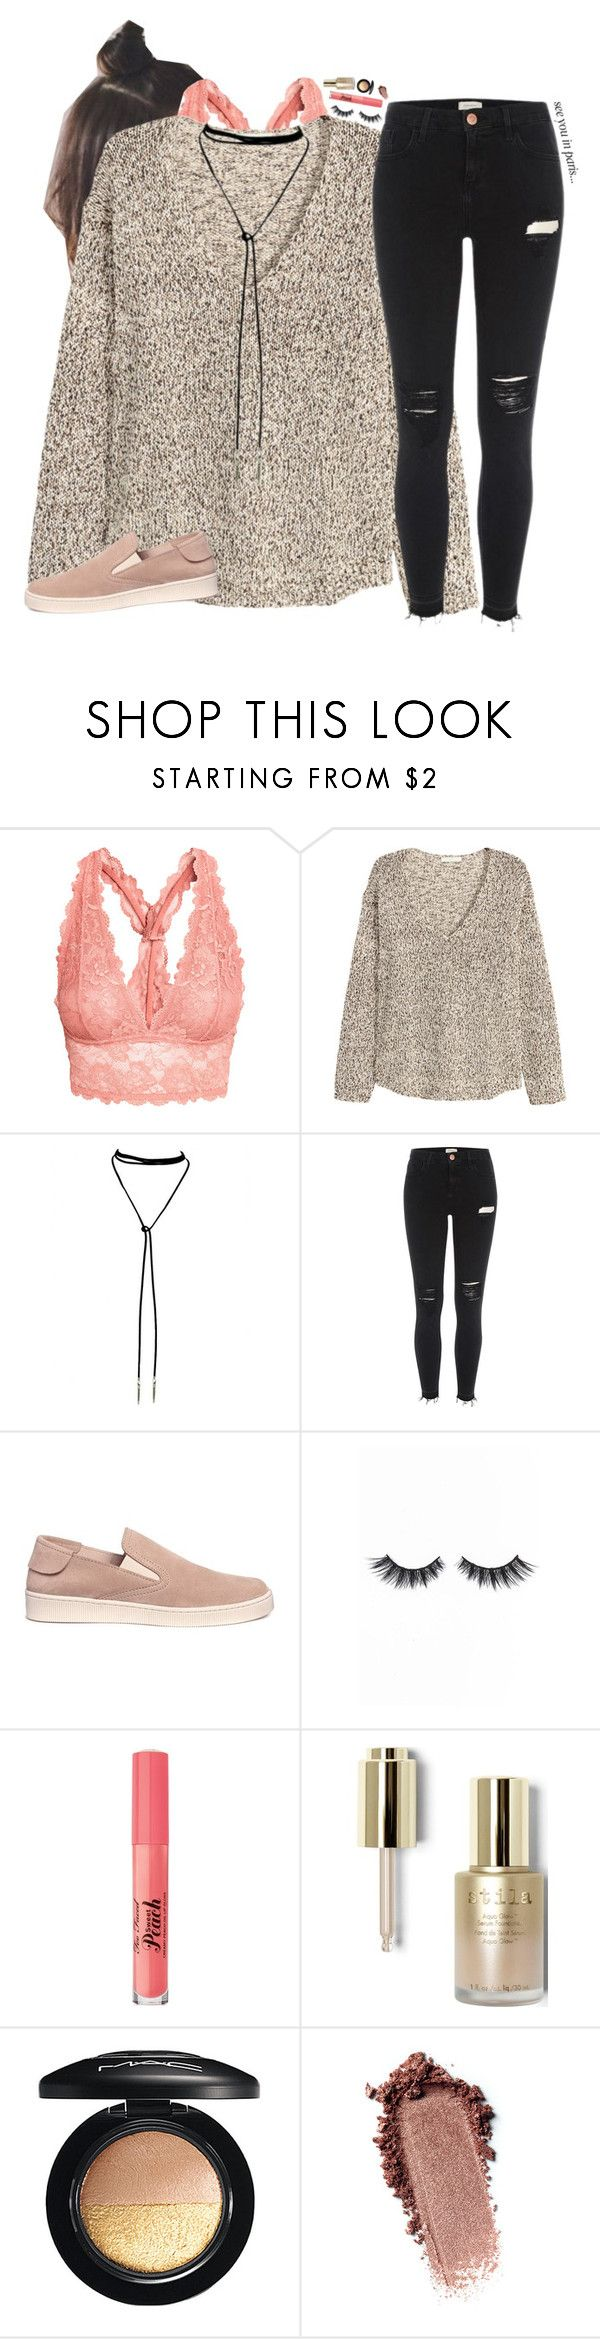 """""""I'M BACK😁"""" by sophie-dye ❤ liked on Polyvore featuring H&M, Bølo, River Island, Pedro García, Violet Voss, Too Faced Cosmetics, Stila and MAC Cosmetics"""